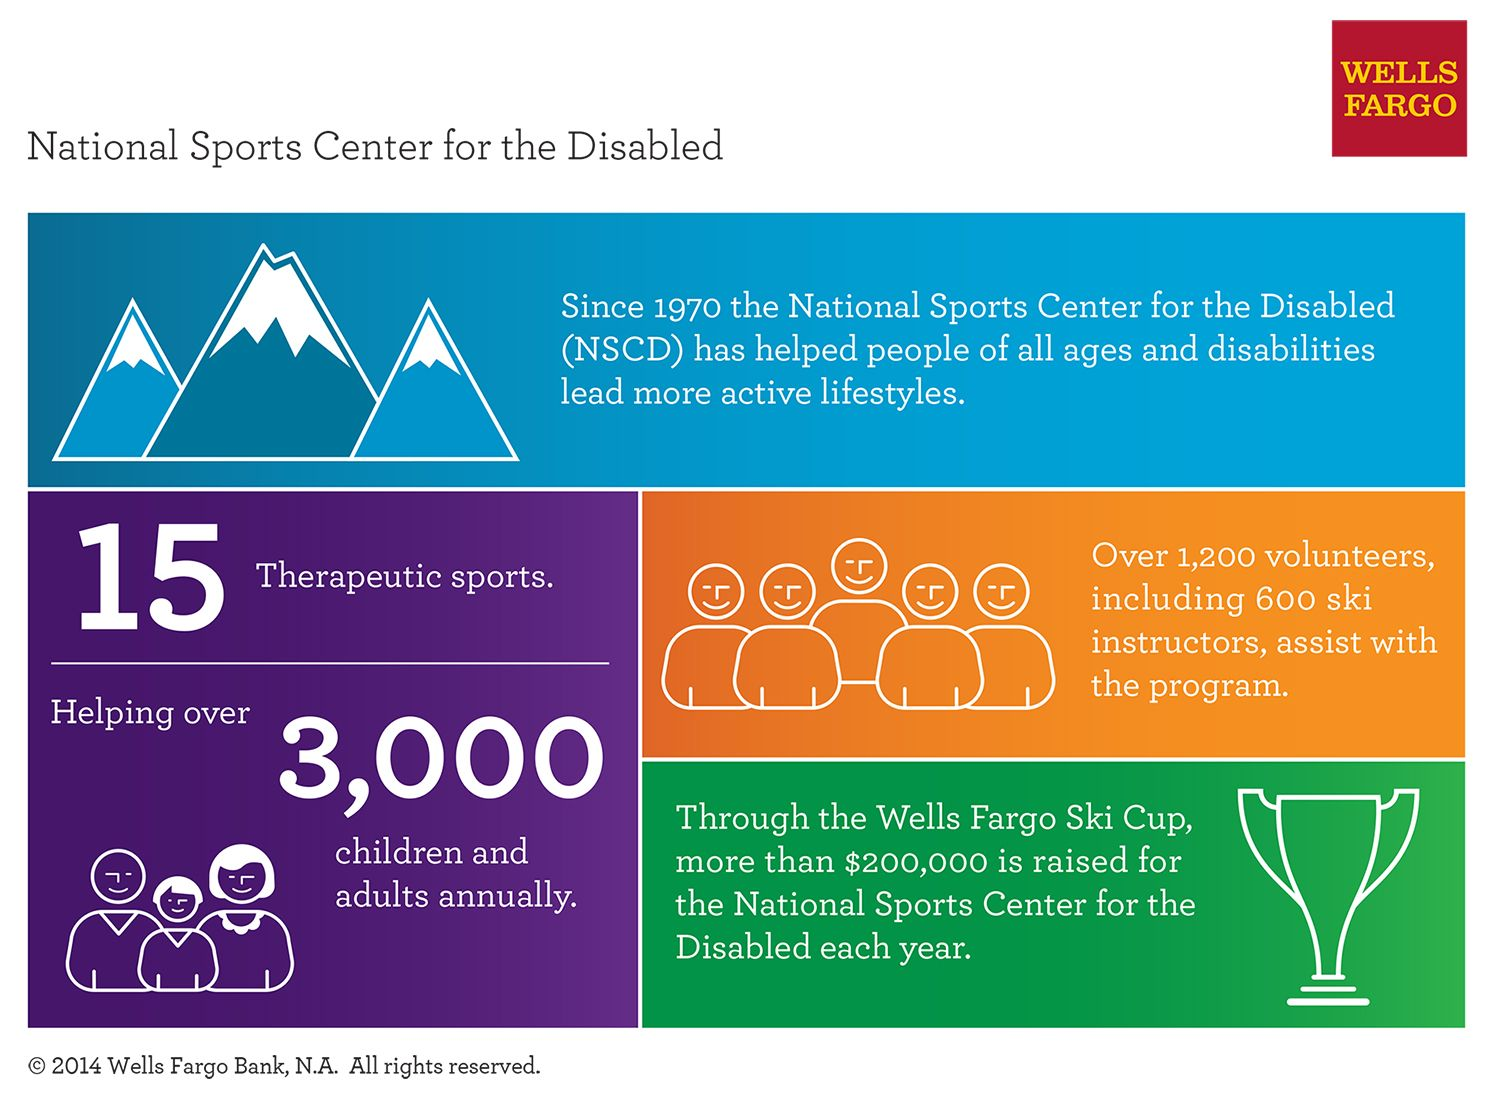 Who NSCD Helps Helping people, Wells fargo, National sport